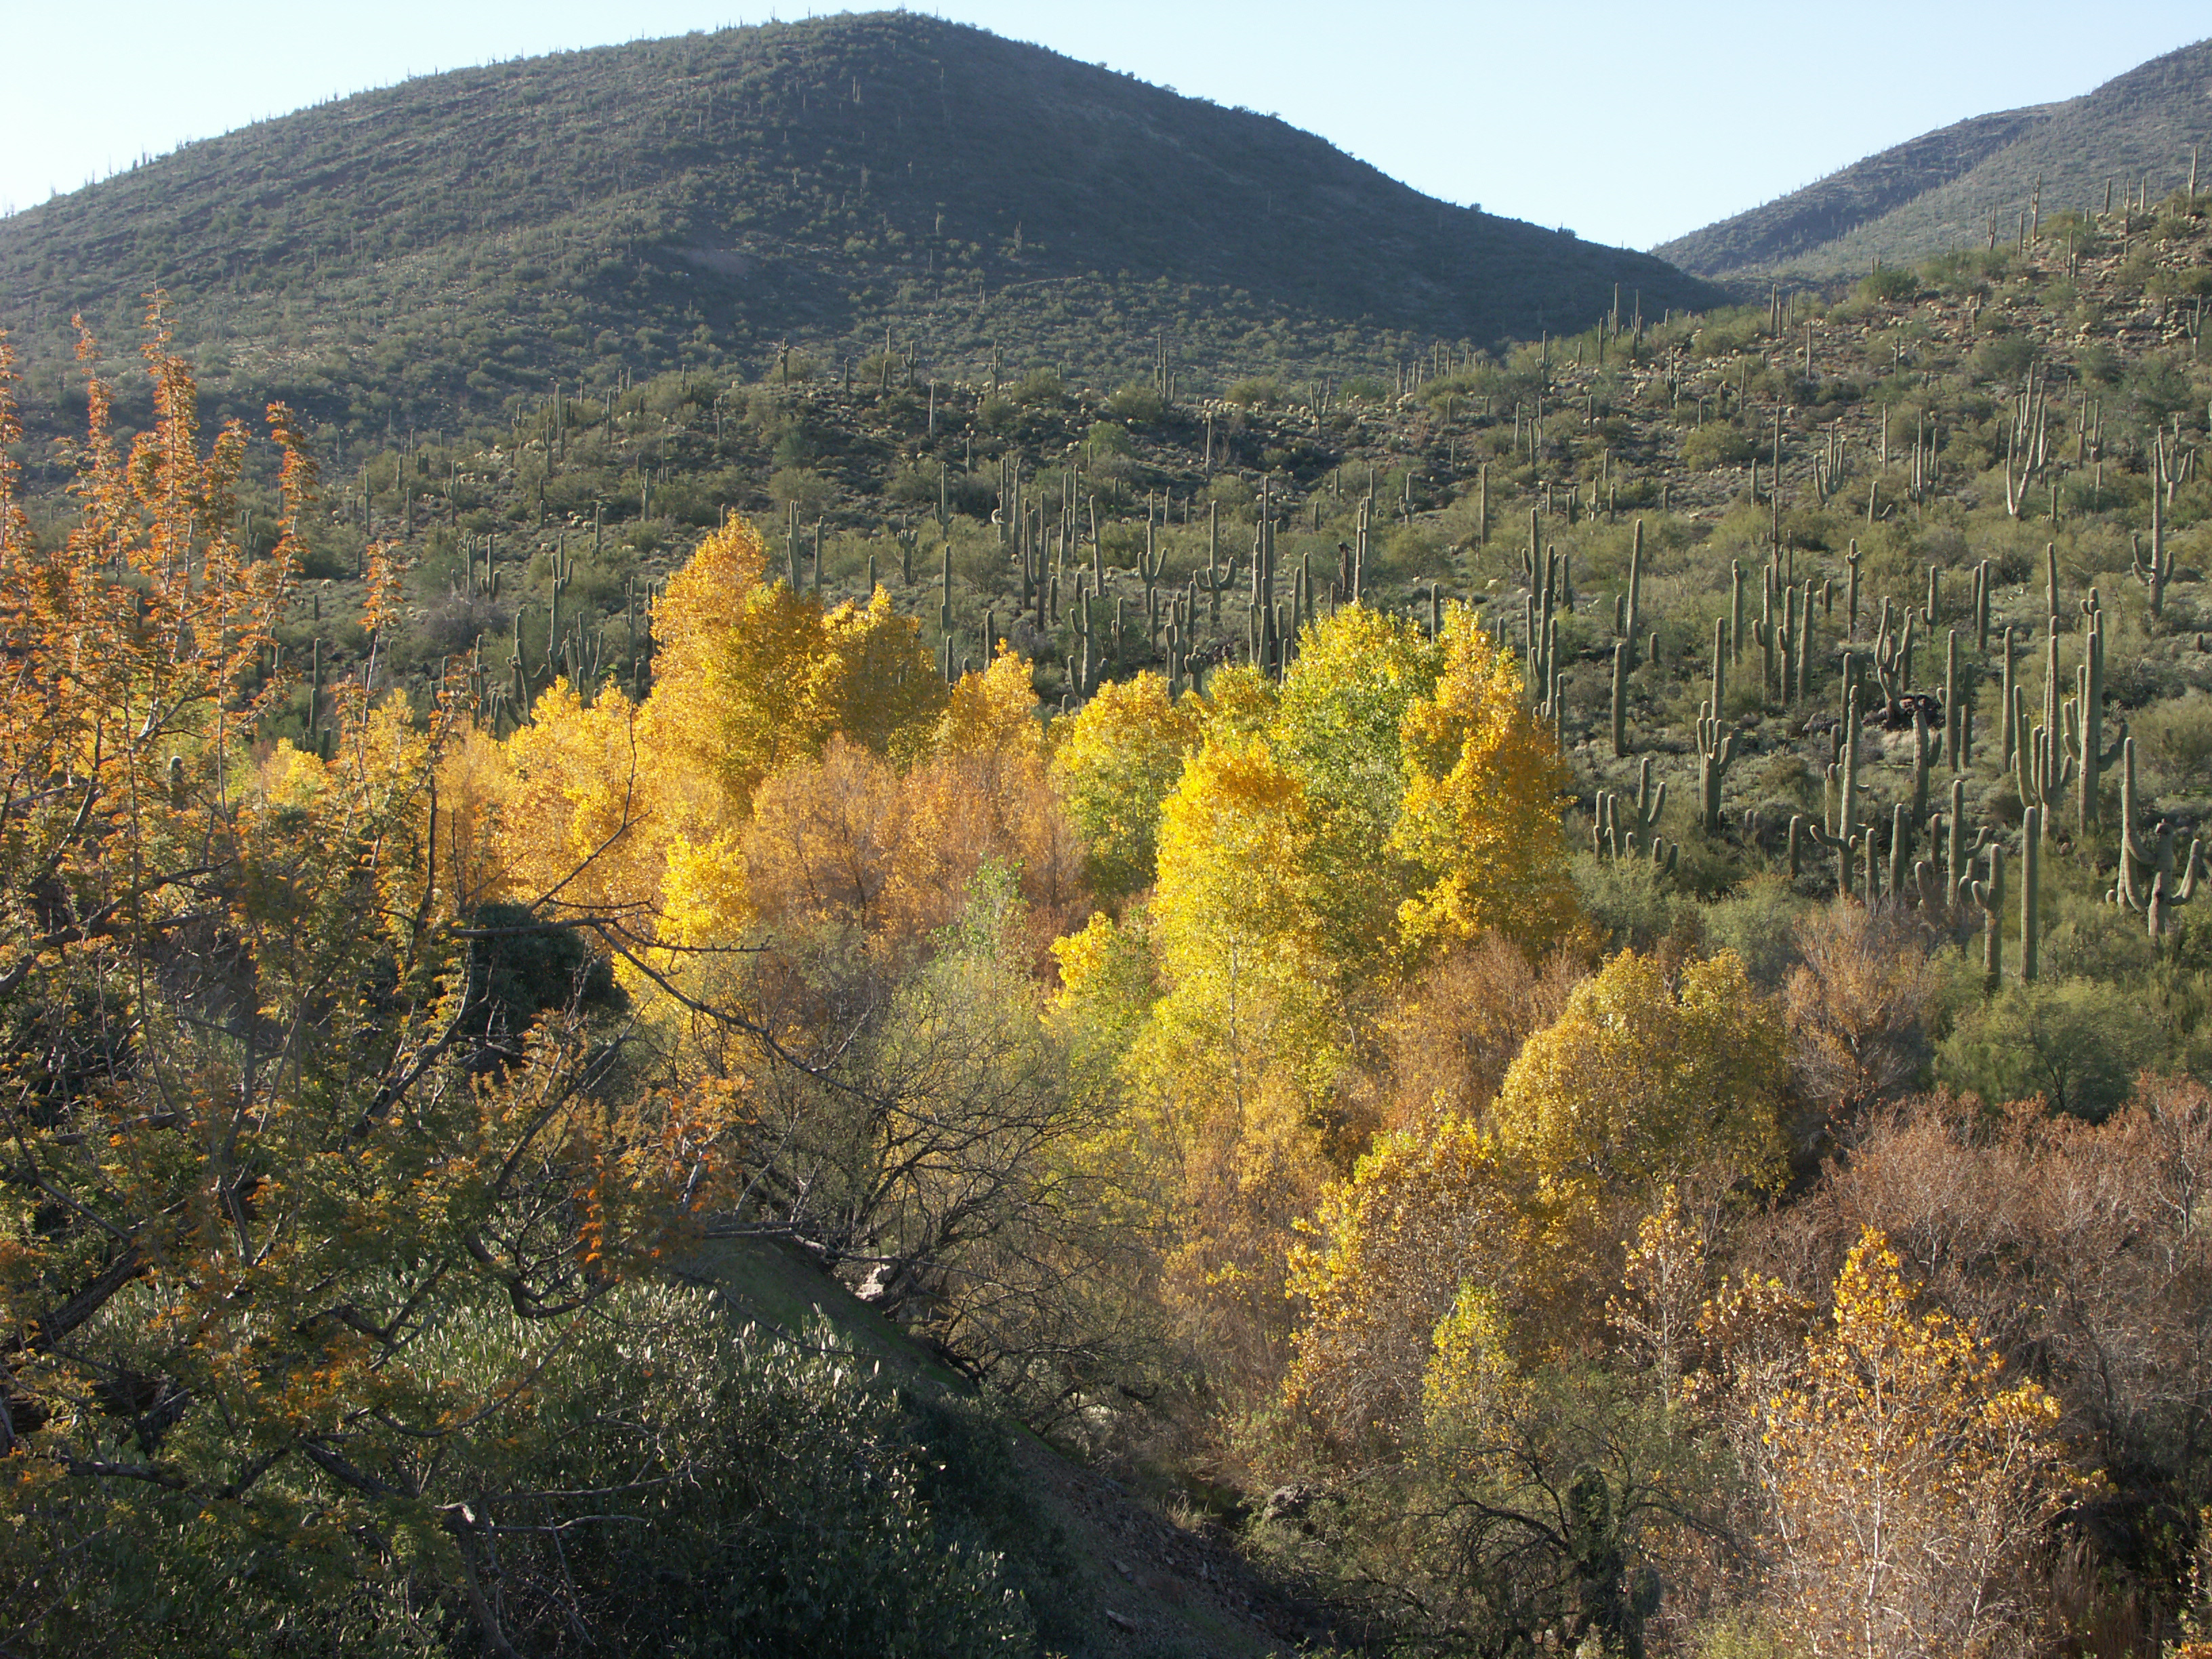 Autum color on Cottonwood trees with saguaros and desert mountains in the background at the Jewel of the Creek.